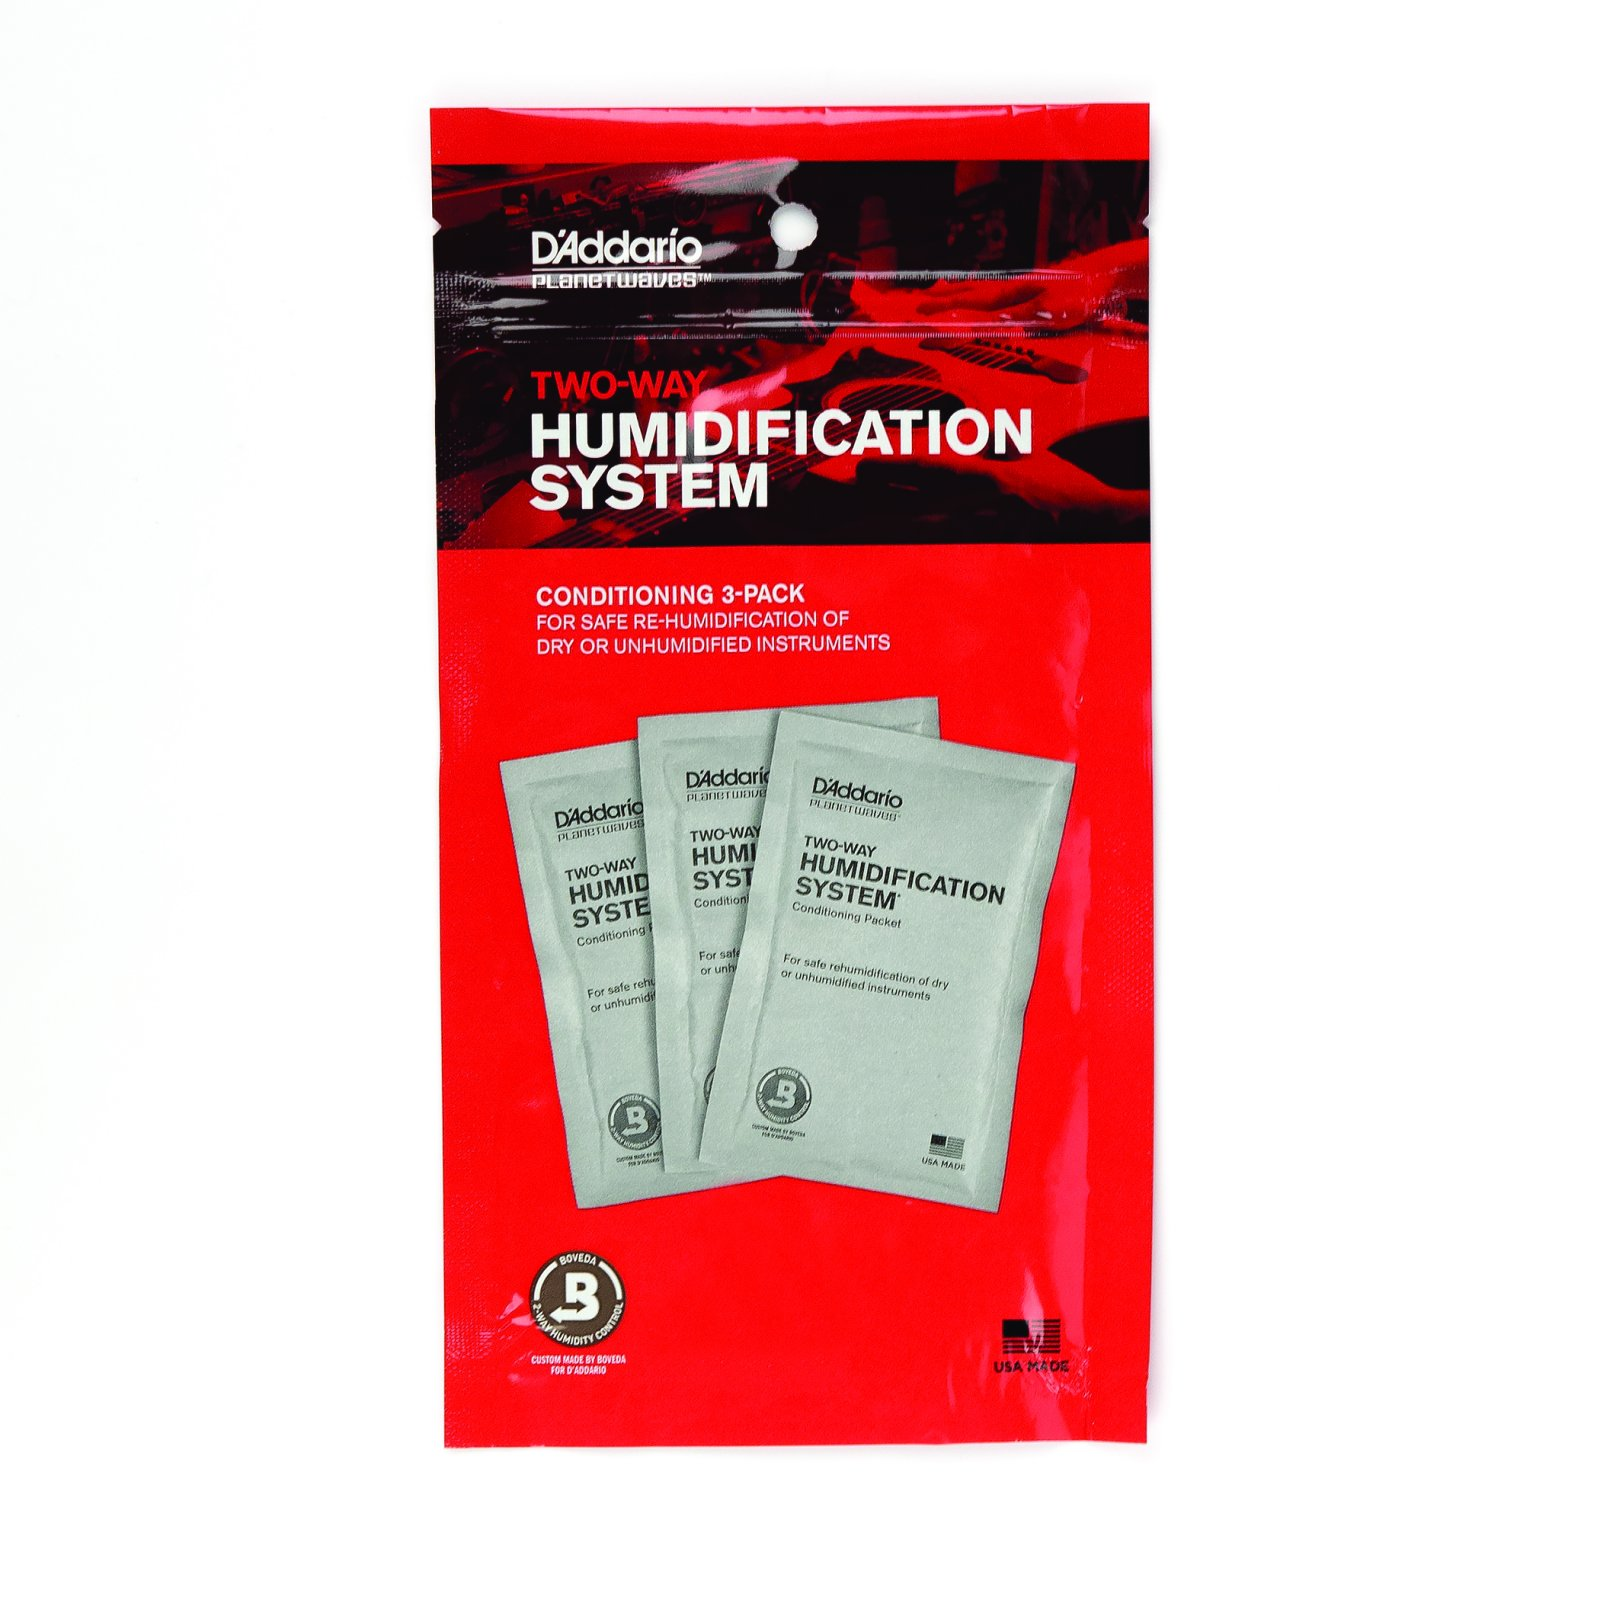 PW-HPCP-03 Two-Way Humidification System Conditioning Packets 75% PW-HPCP-03